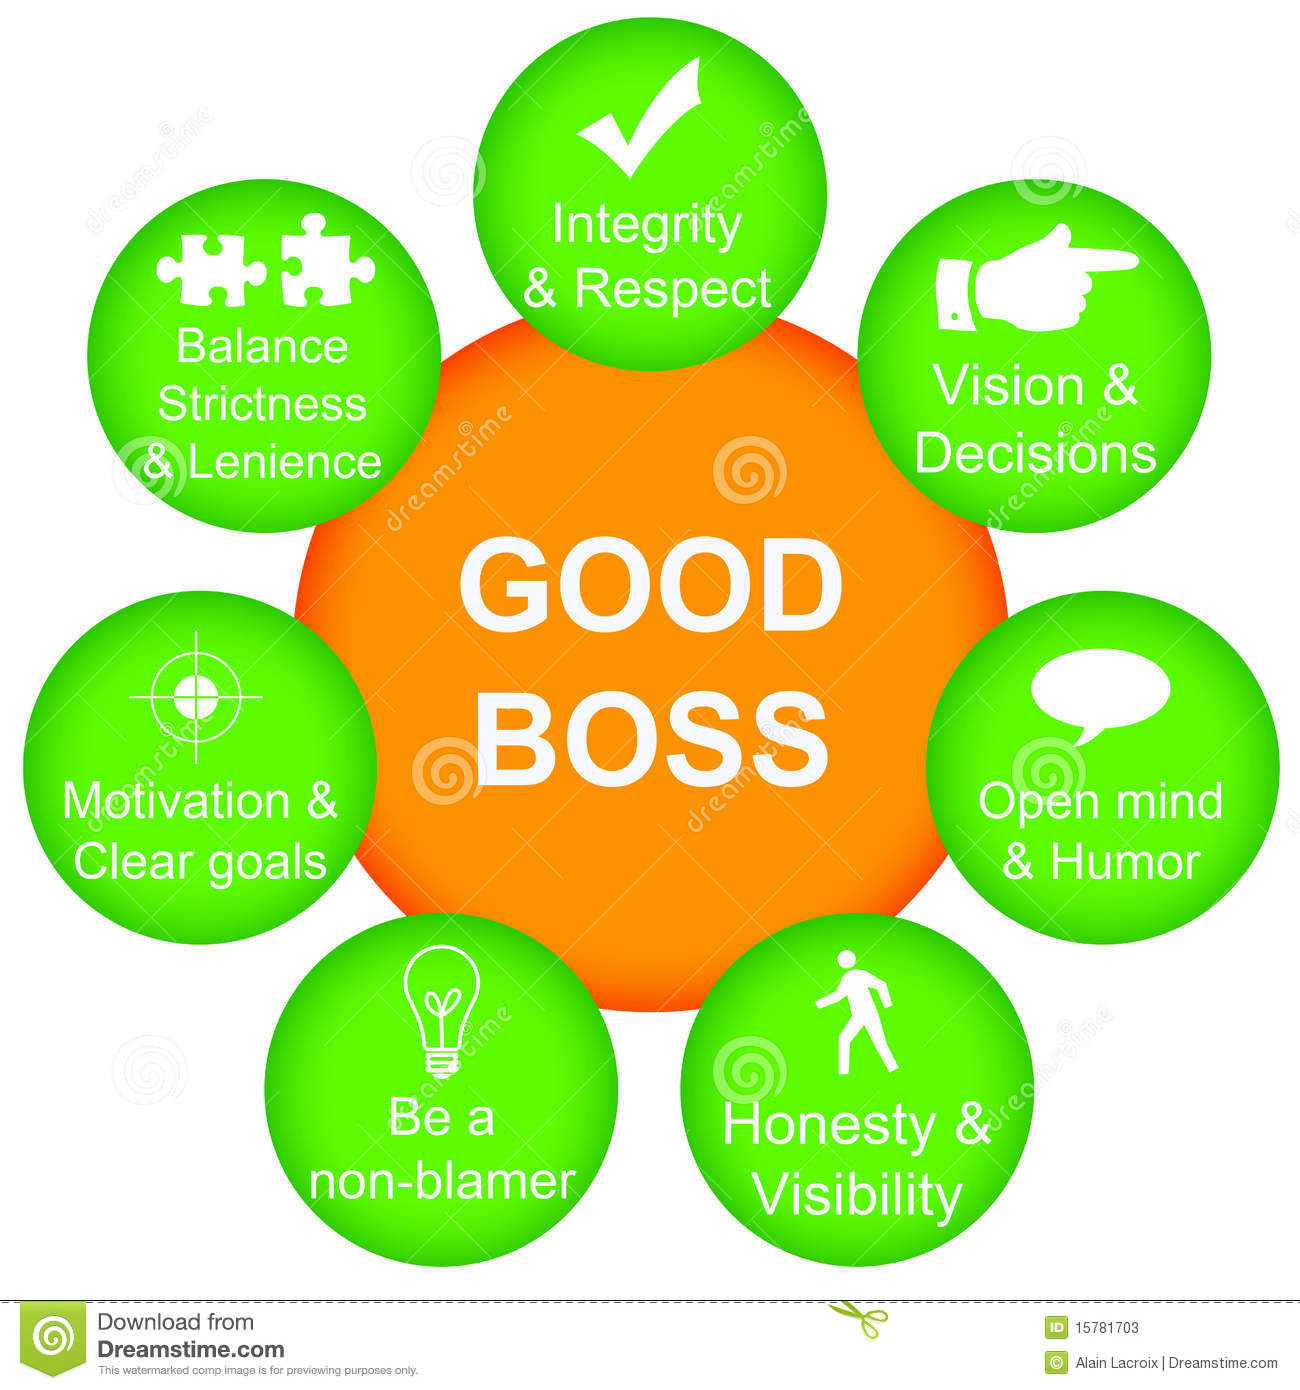 important qualities of good supervisor 提供important qualities of a good supervisor文档免费下载,摘要:myfriend,john,hasalwaysbeencomplainingabouthissupervisor,statingthatheescapesincidentsoccurredinexperiment,notgraspsaful.